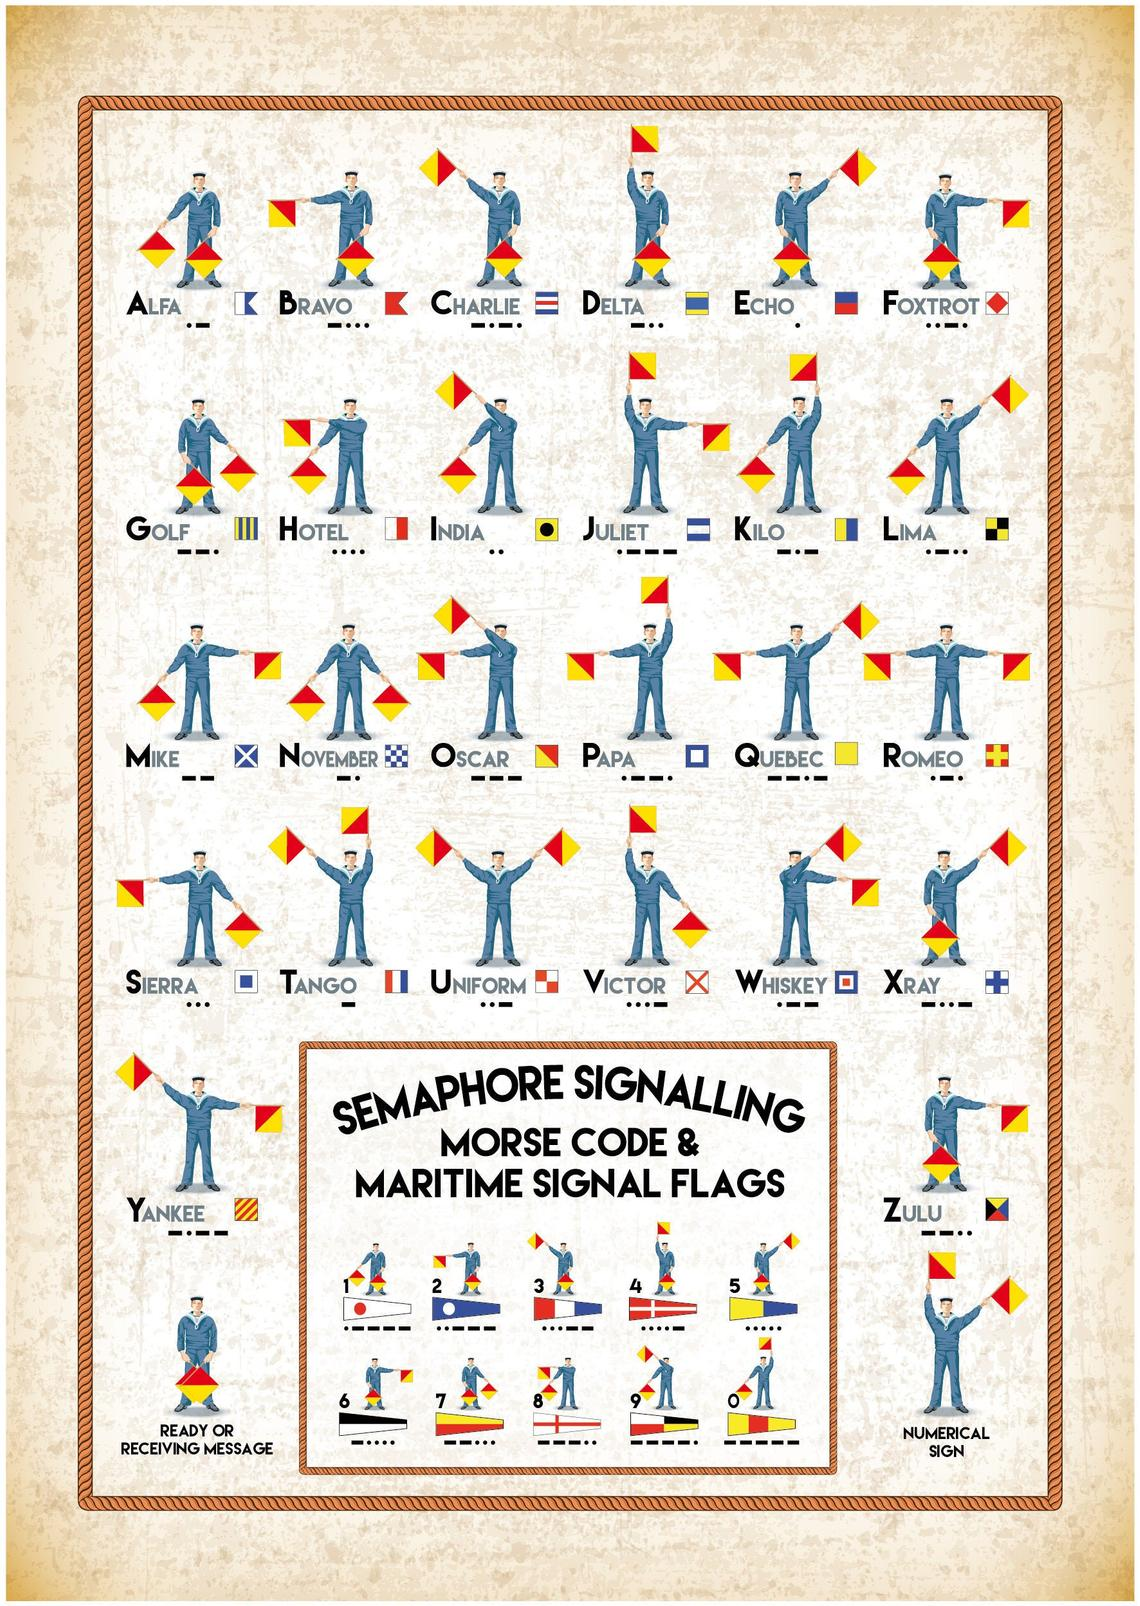 Maritime Semaphore Flags, Signal Flags